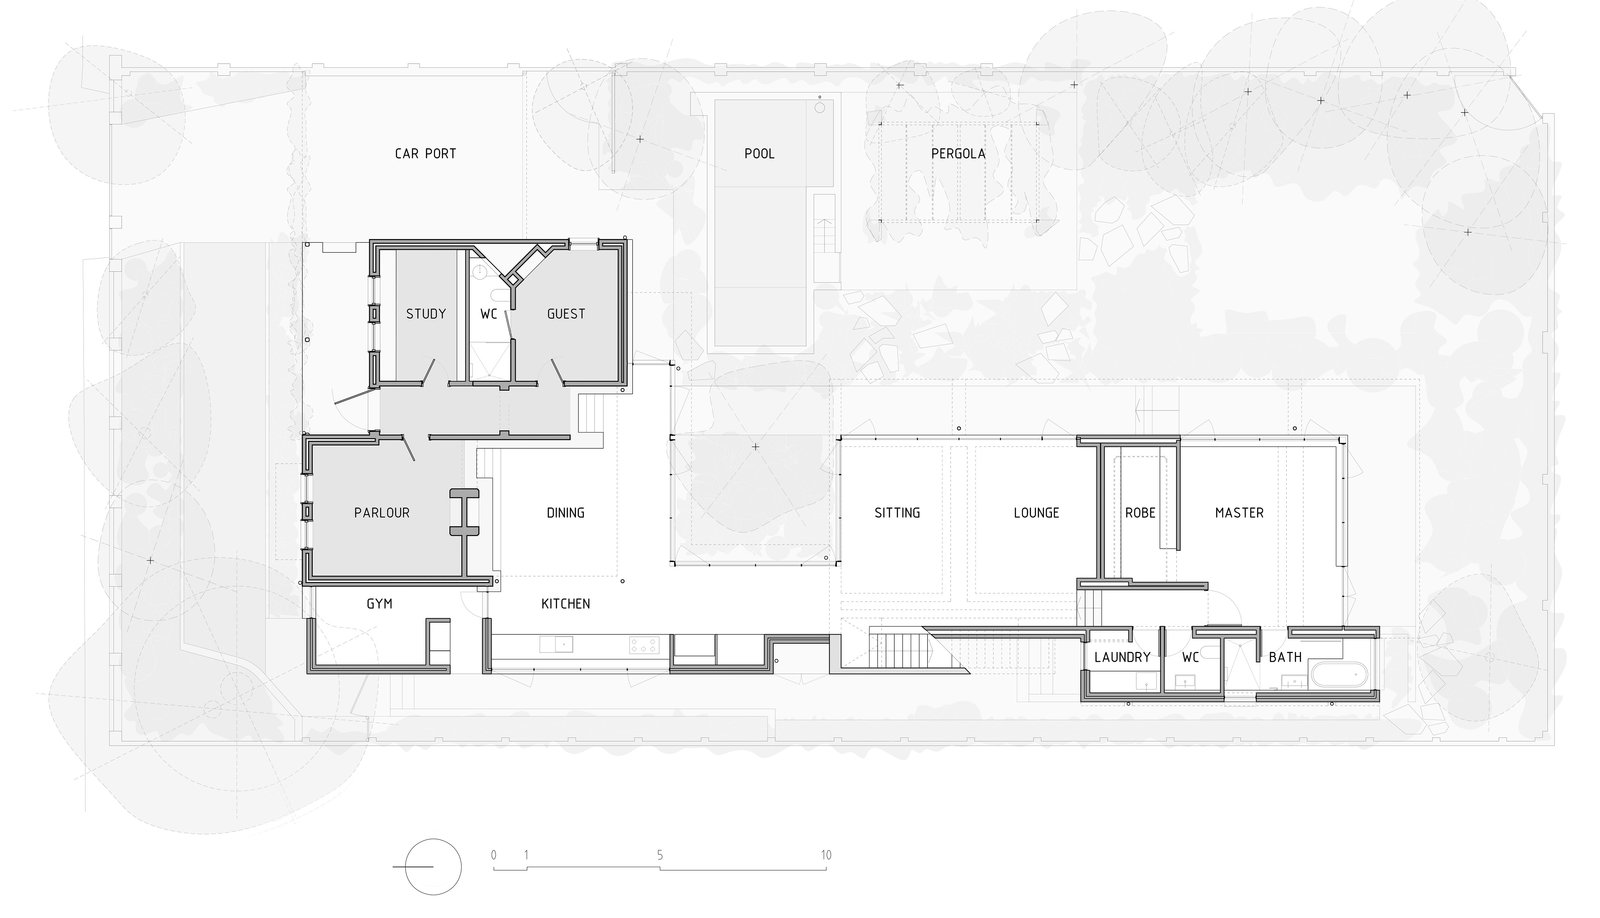 Floorplan of the Reed House- ground floor  Photo 18 of 19 in Two Sisters Work Together to Revive and Expand a Turn-of-the-Century Home in Perth